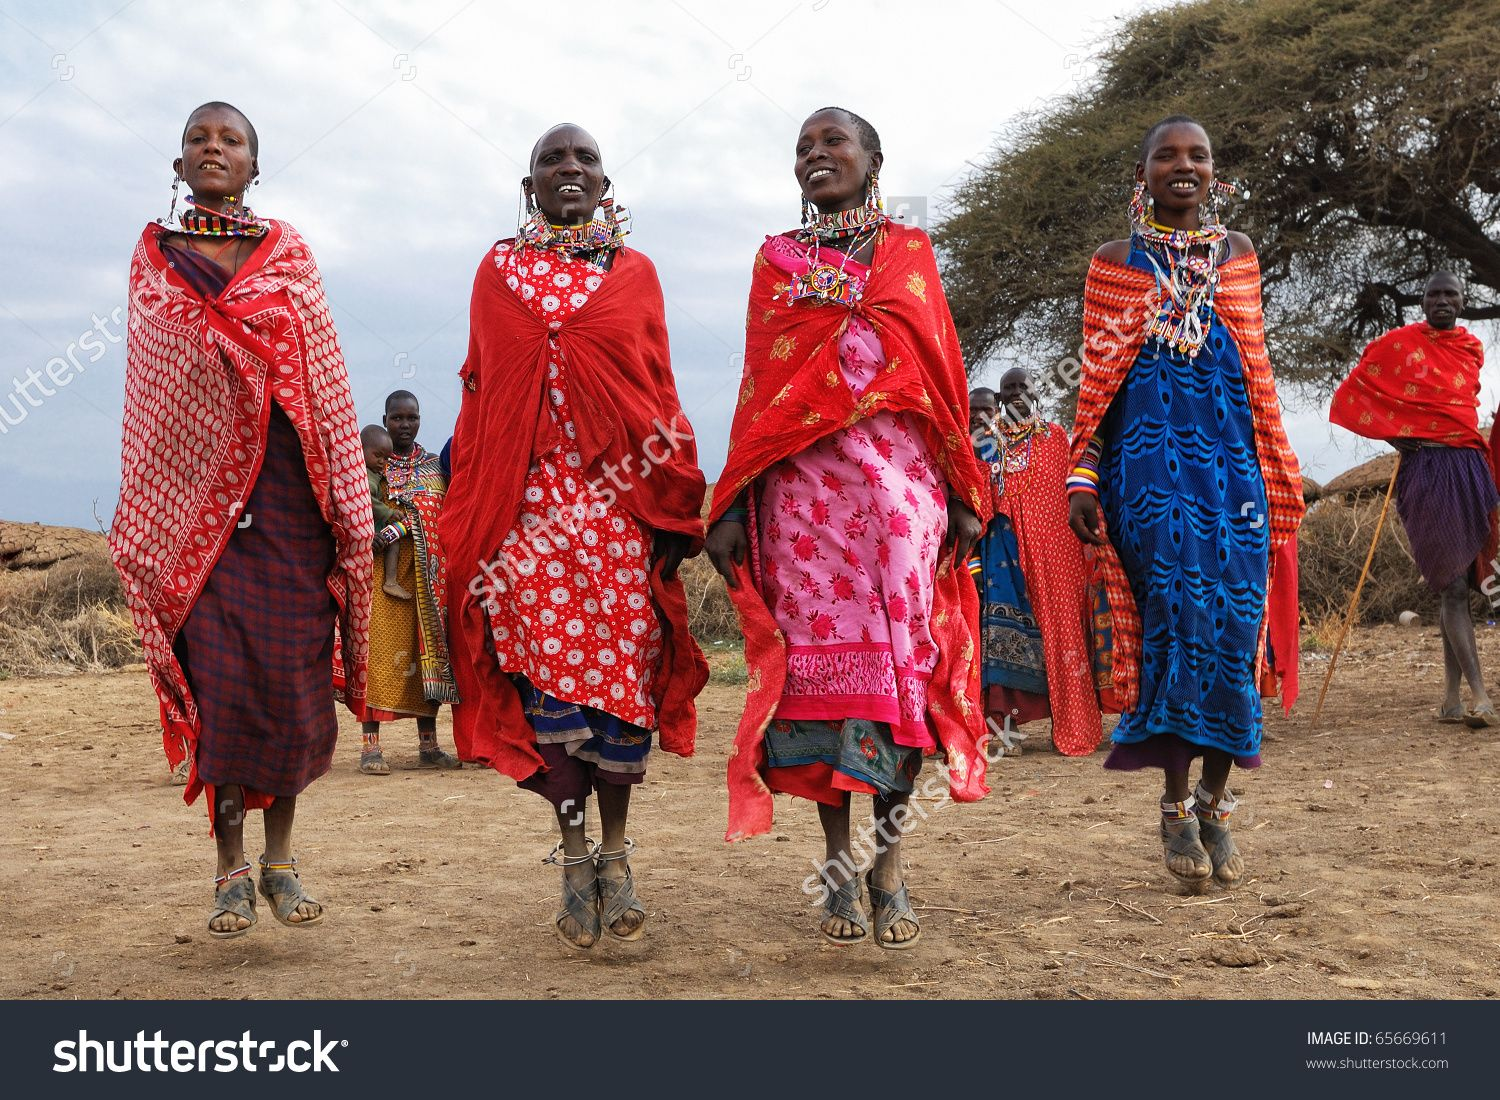 Image Result For African Tribe Women Group Lady Boss Tribe Logo - Maasai tribe wild animals attend wedding kenya